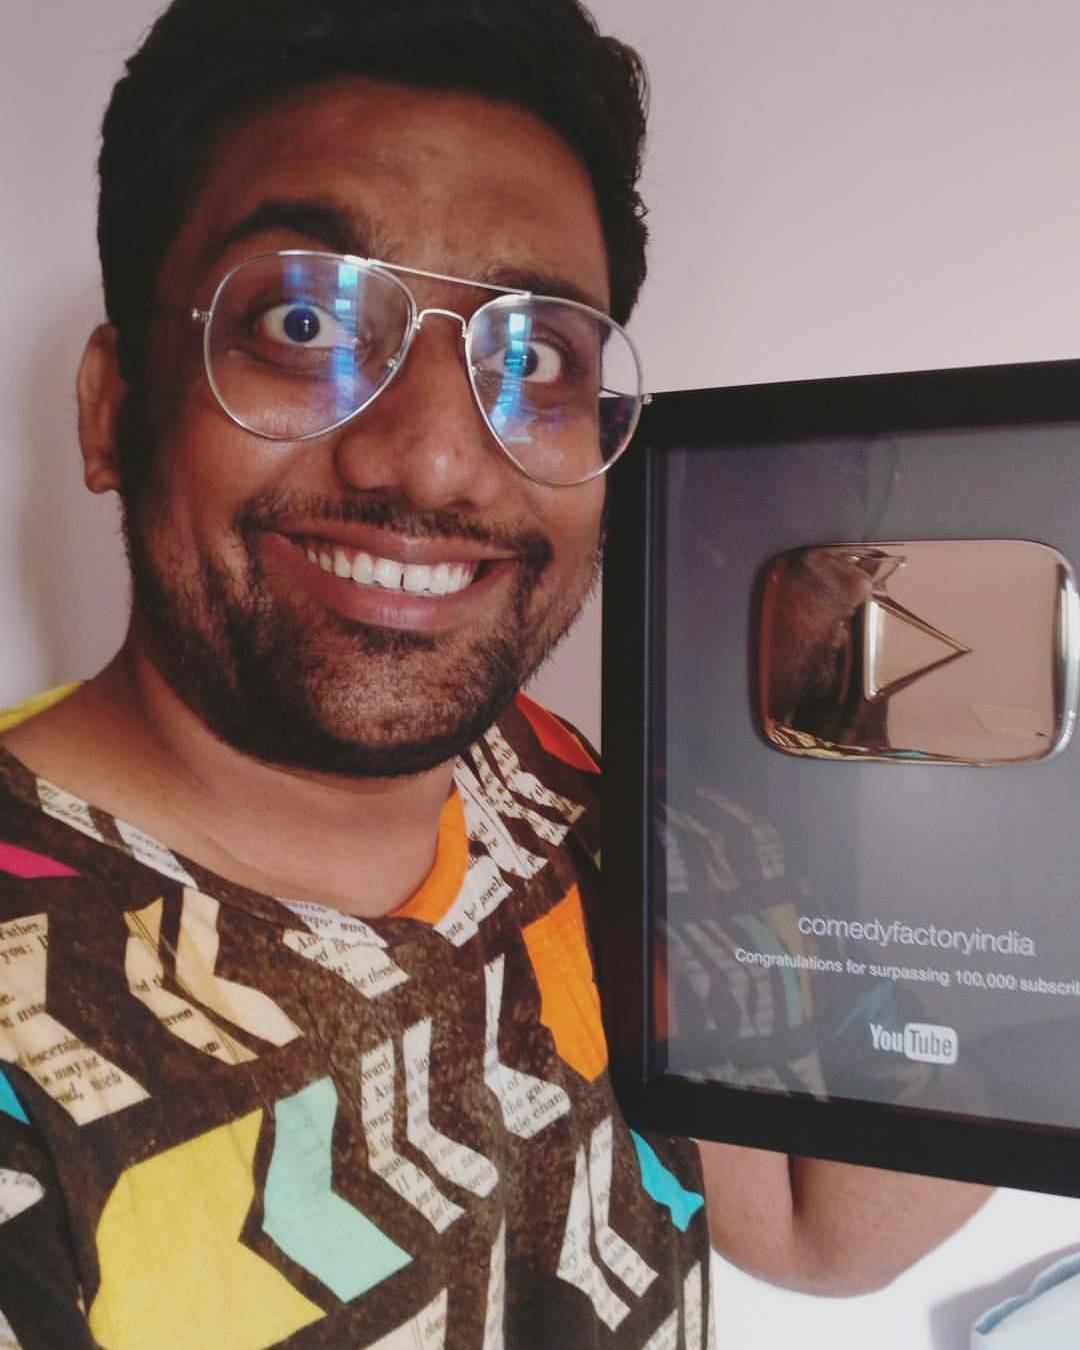 First Gujarati YouTube channel with original Gujarati comedy content to receive the silver play button. @thecomedyfactoryindia Team is best. Couldn't be more proud of each and everyone on our team. Thanks all for the constant support.  #TheComedyFactory #TCF6years